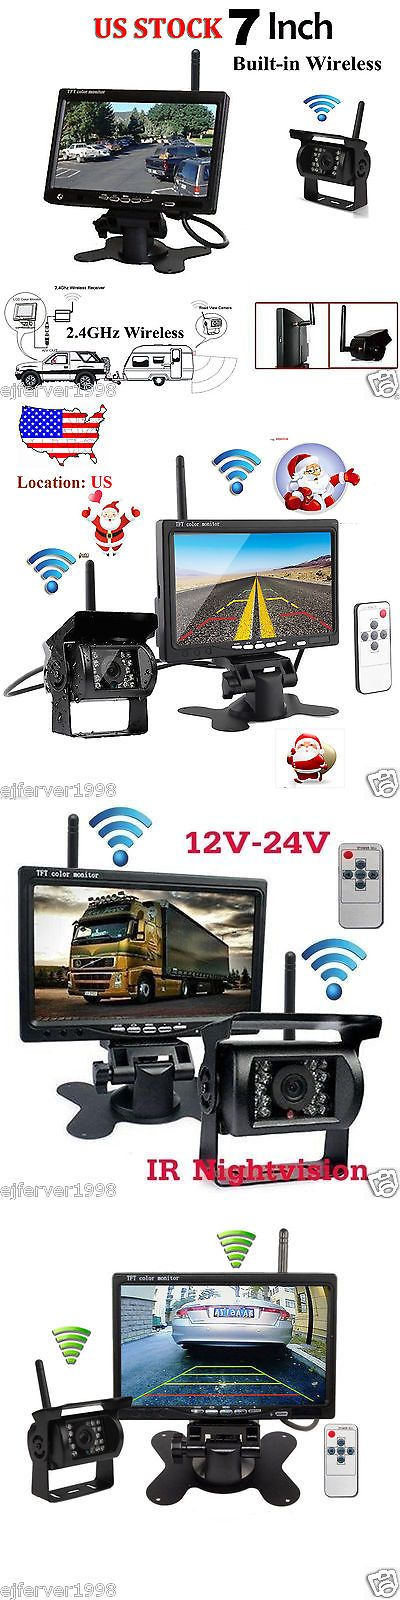 Rear View Monitors Cams and Kits: Wireless Ir Night Vision Rear View Backup Camera+7Monitor For Rv Truck/Trailer -> BUY IT NOW ONLY: $68.99 on eBay!